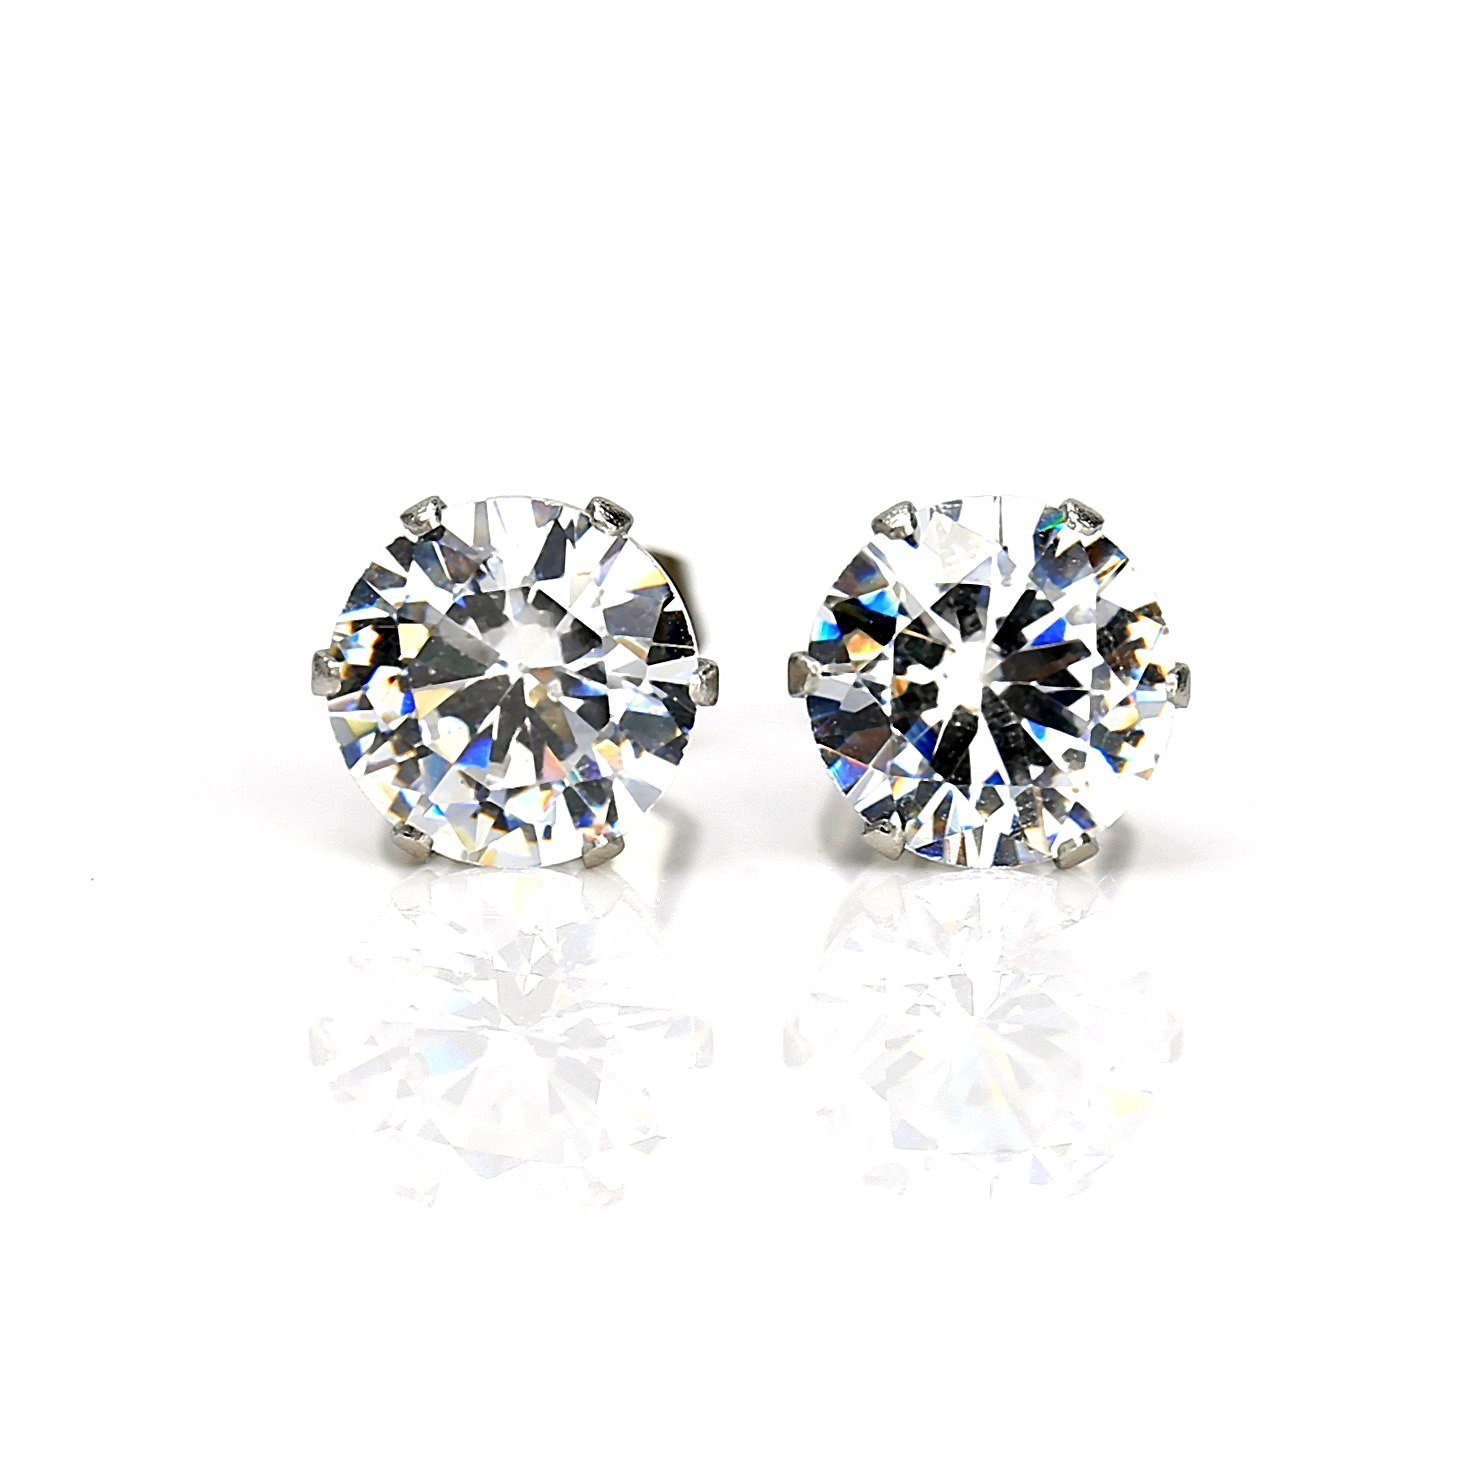 Striking Silver Tone Swarovski Style Stud Earrings, Approx. 2 Ct Total Weight (Comparable to Diamond Weight)